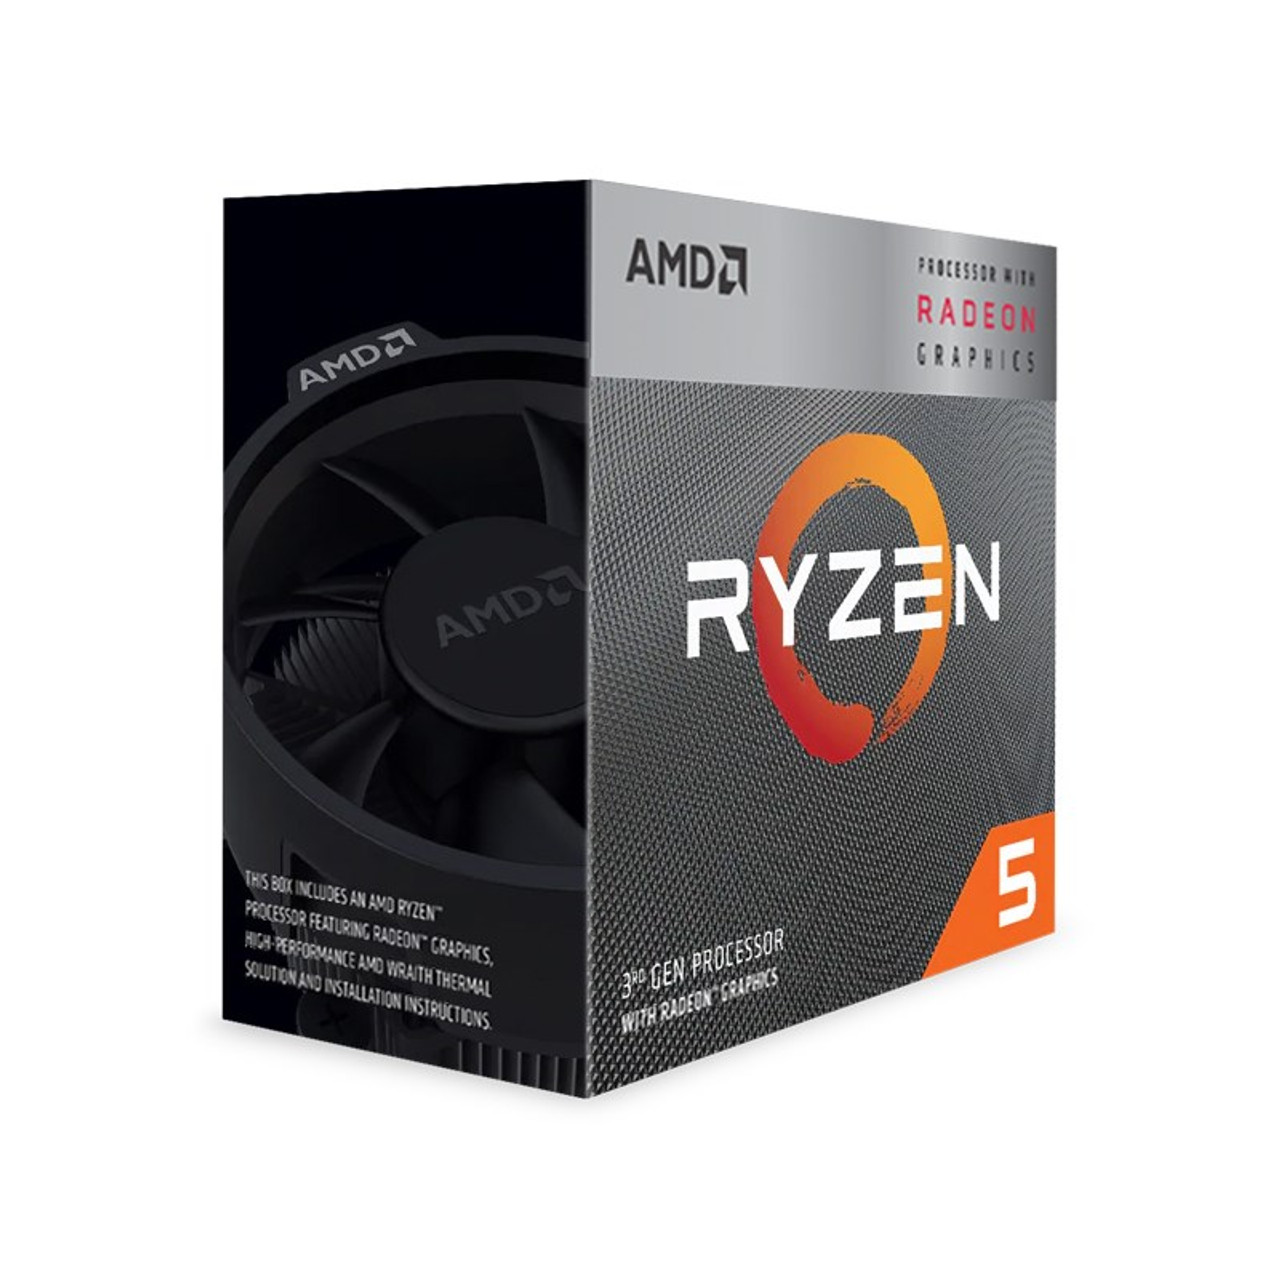 Product image for AMD Ryzen 5 3400G APU with Vega 11 Graphics | CX Computer Superstore